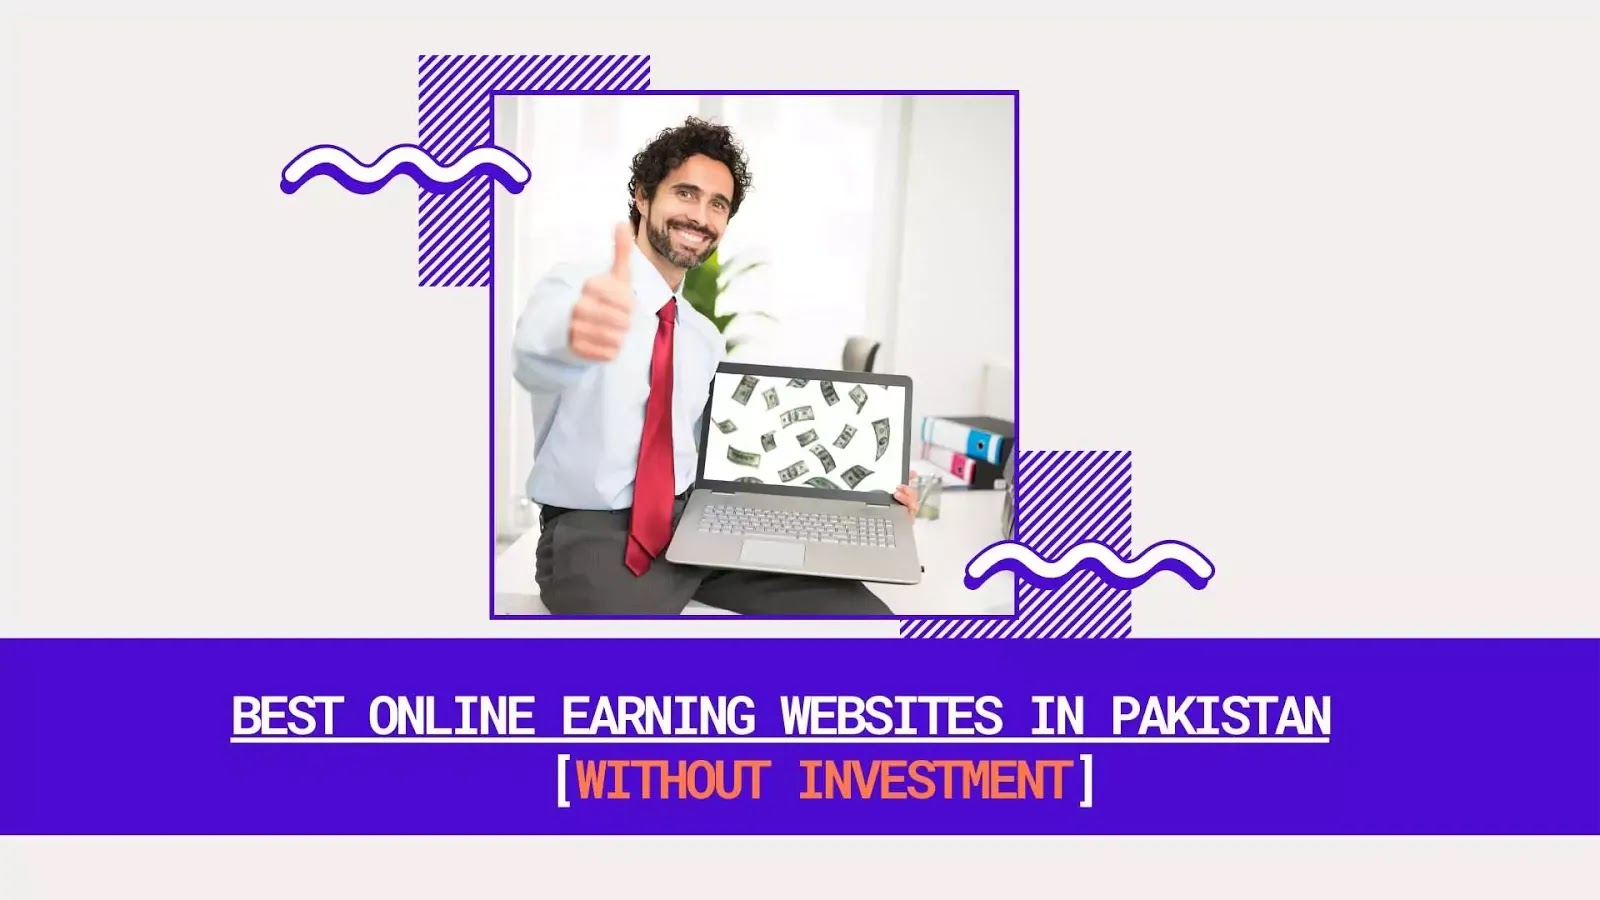 Online Earning Websites In Pakistan Without Investment In 2020